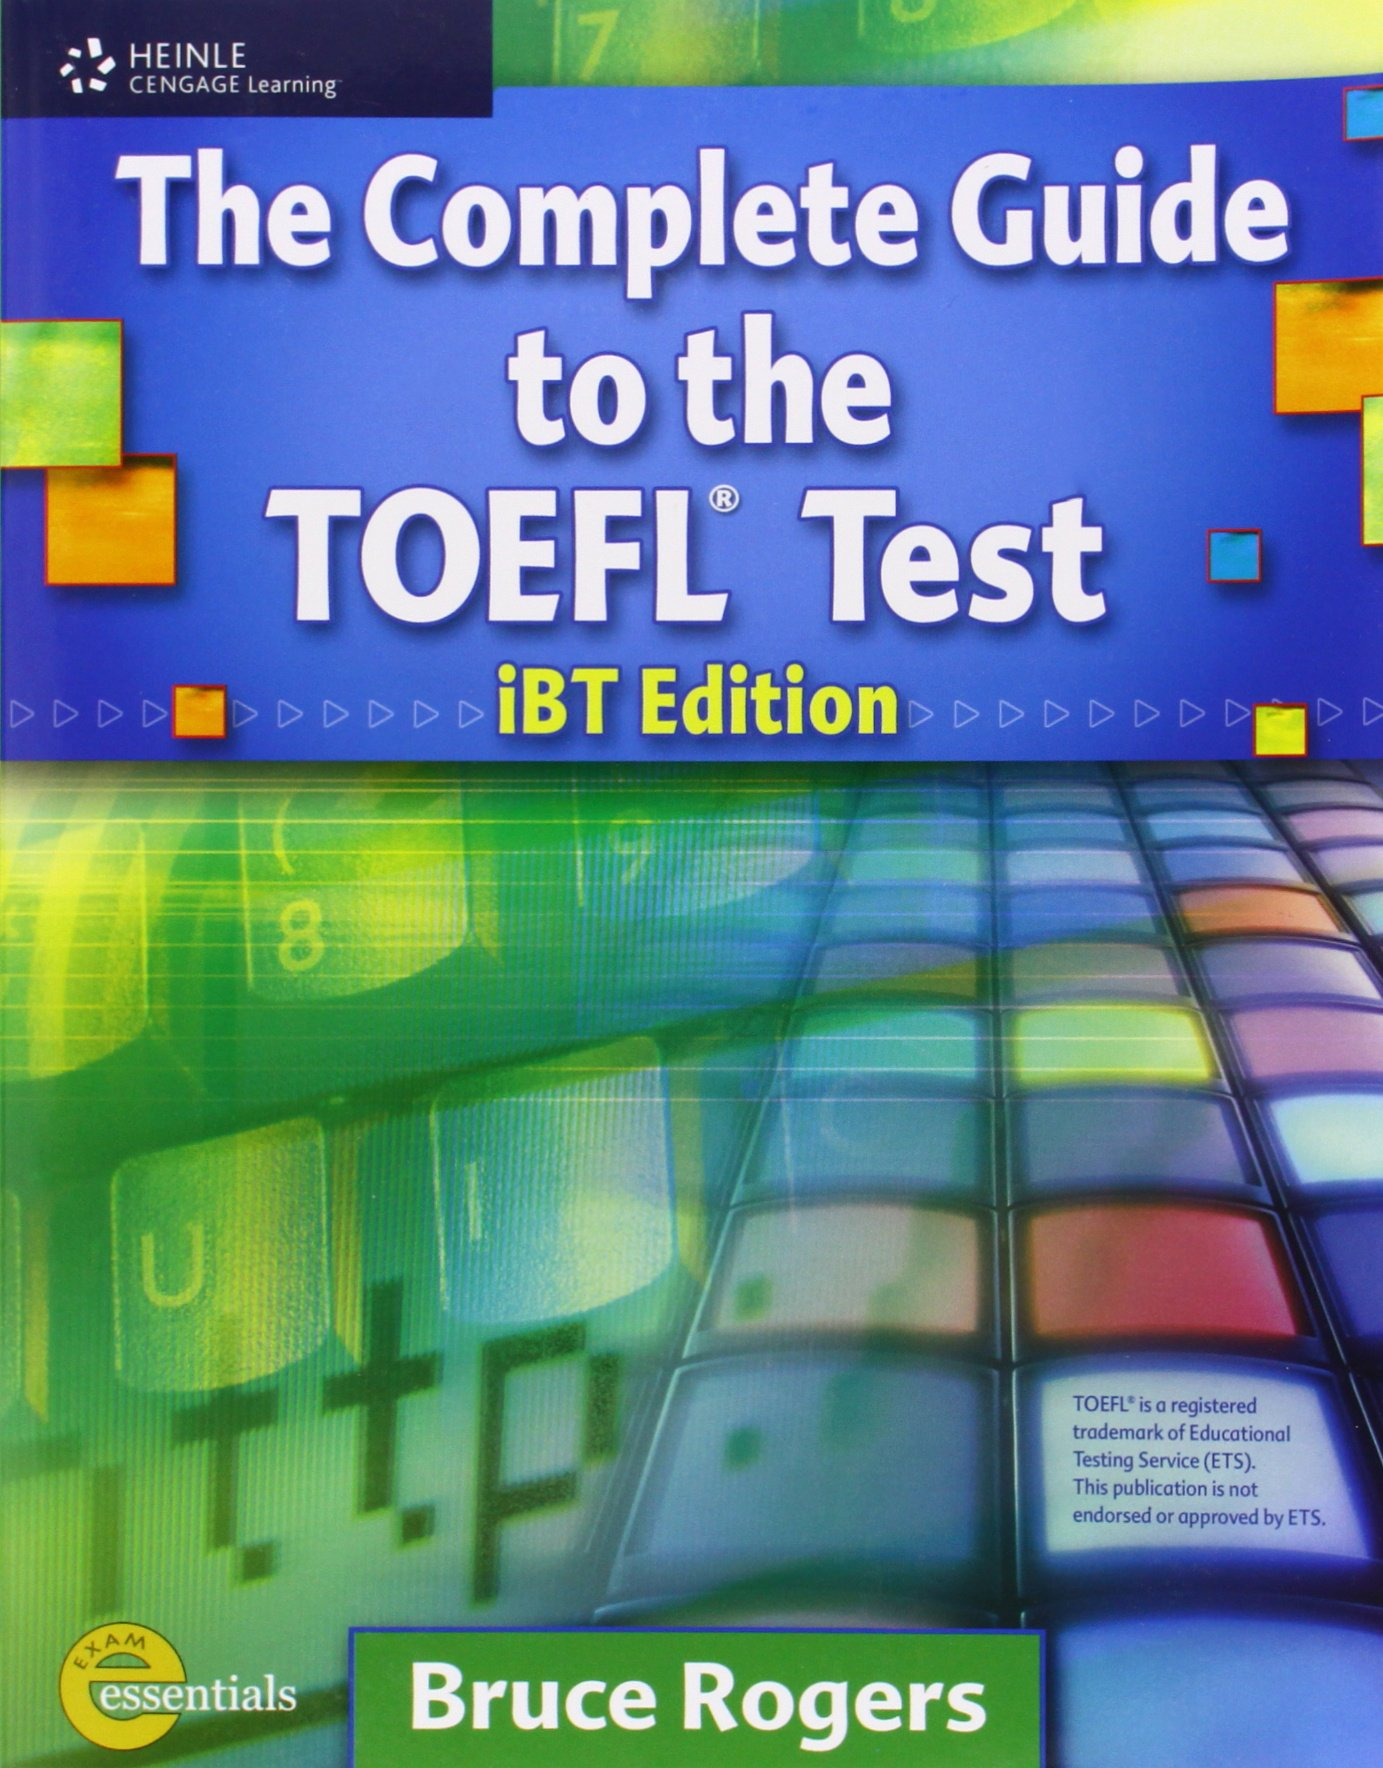 Buy The Complete Guide To The Toefl Test Ibt Edition Exam Essentials Book Online At Low Prices In India The Complete Guide To The Toefl Test Ibt